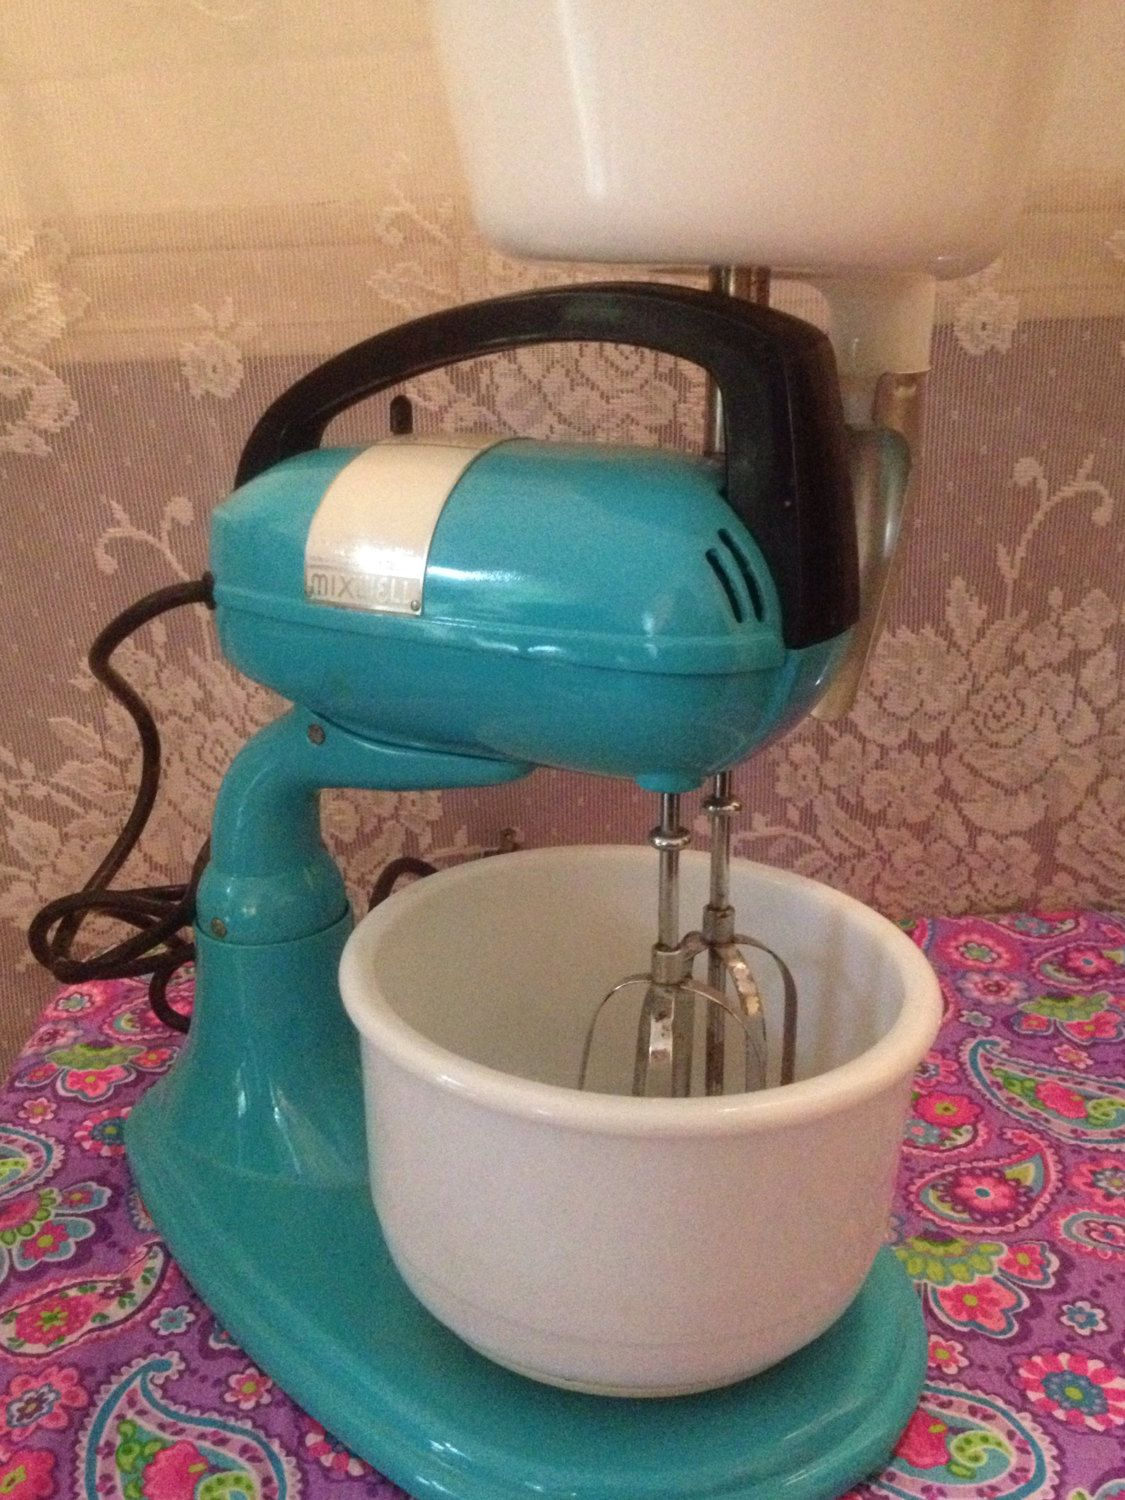 Vintage Dormeyer Mixwell refurbished turquoise standmixer complete with juicer and mixing bowl, vintage stand mixers, retro mixers by LakesideVintageShop on Etsy